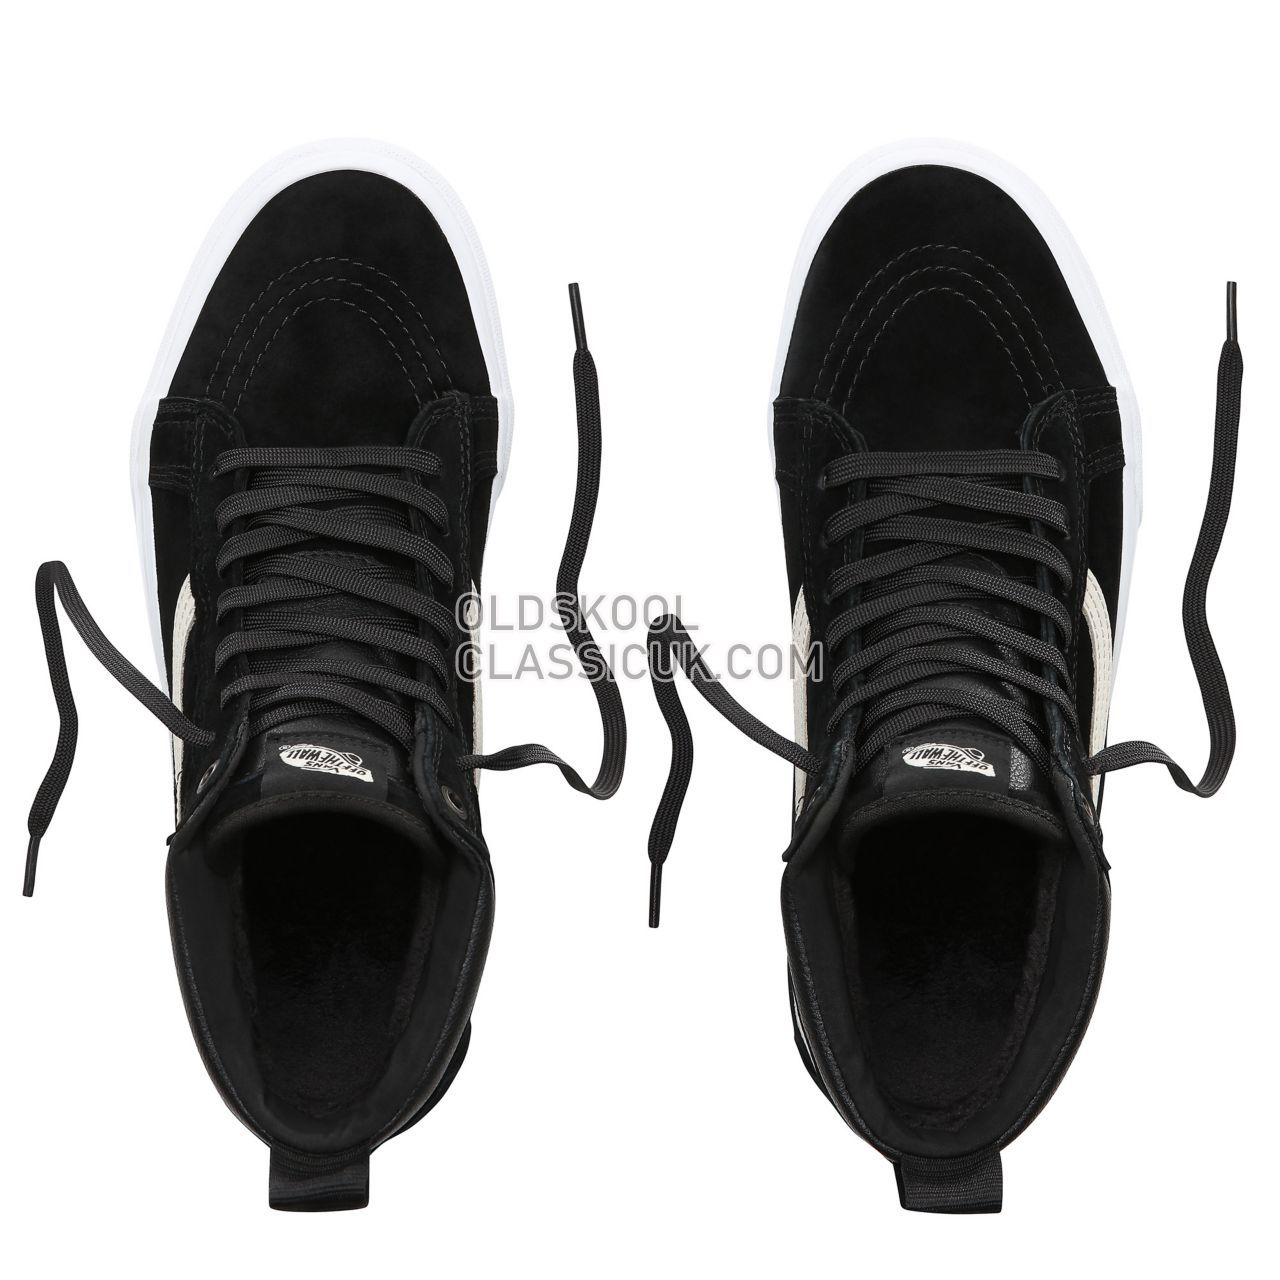 Vans Sk8-Hi MTE Sneakers Mens (Mte) Black/Night/True White VN0A33TXRIX Shoes